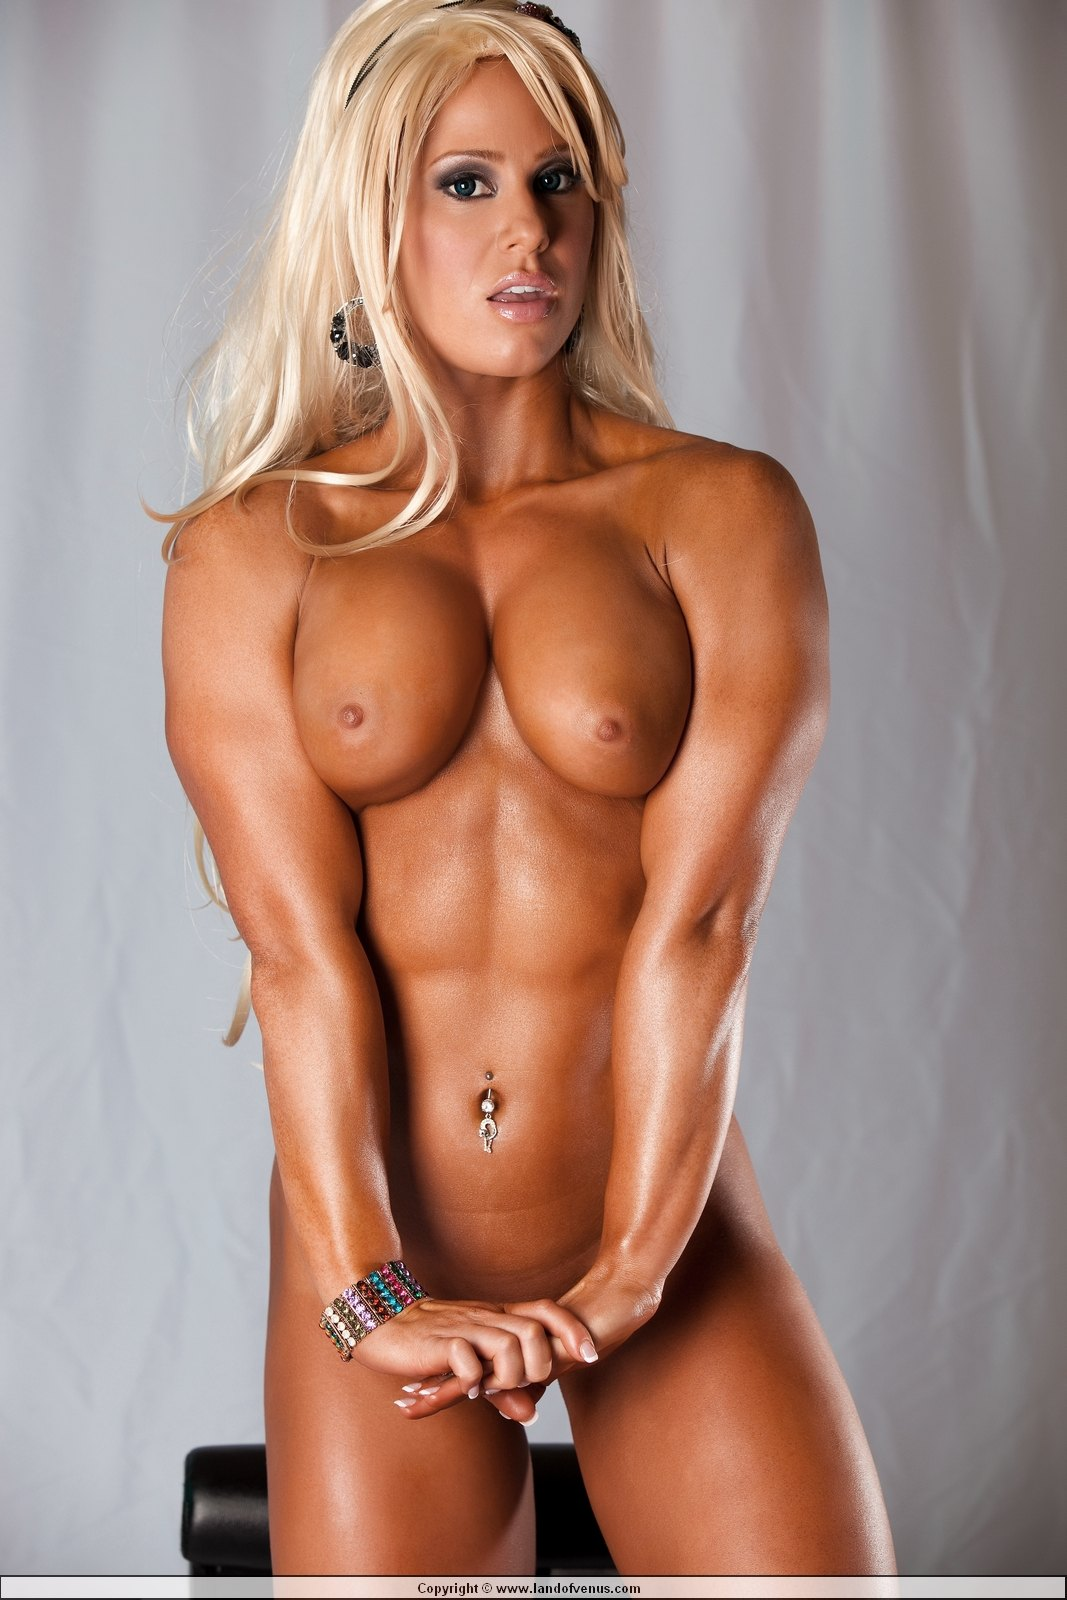 Nude fitness models wallpaper